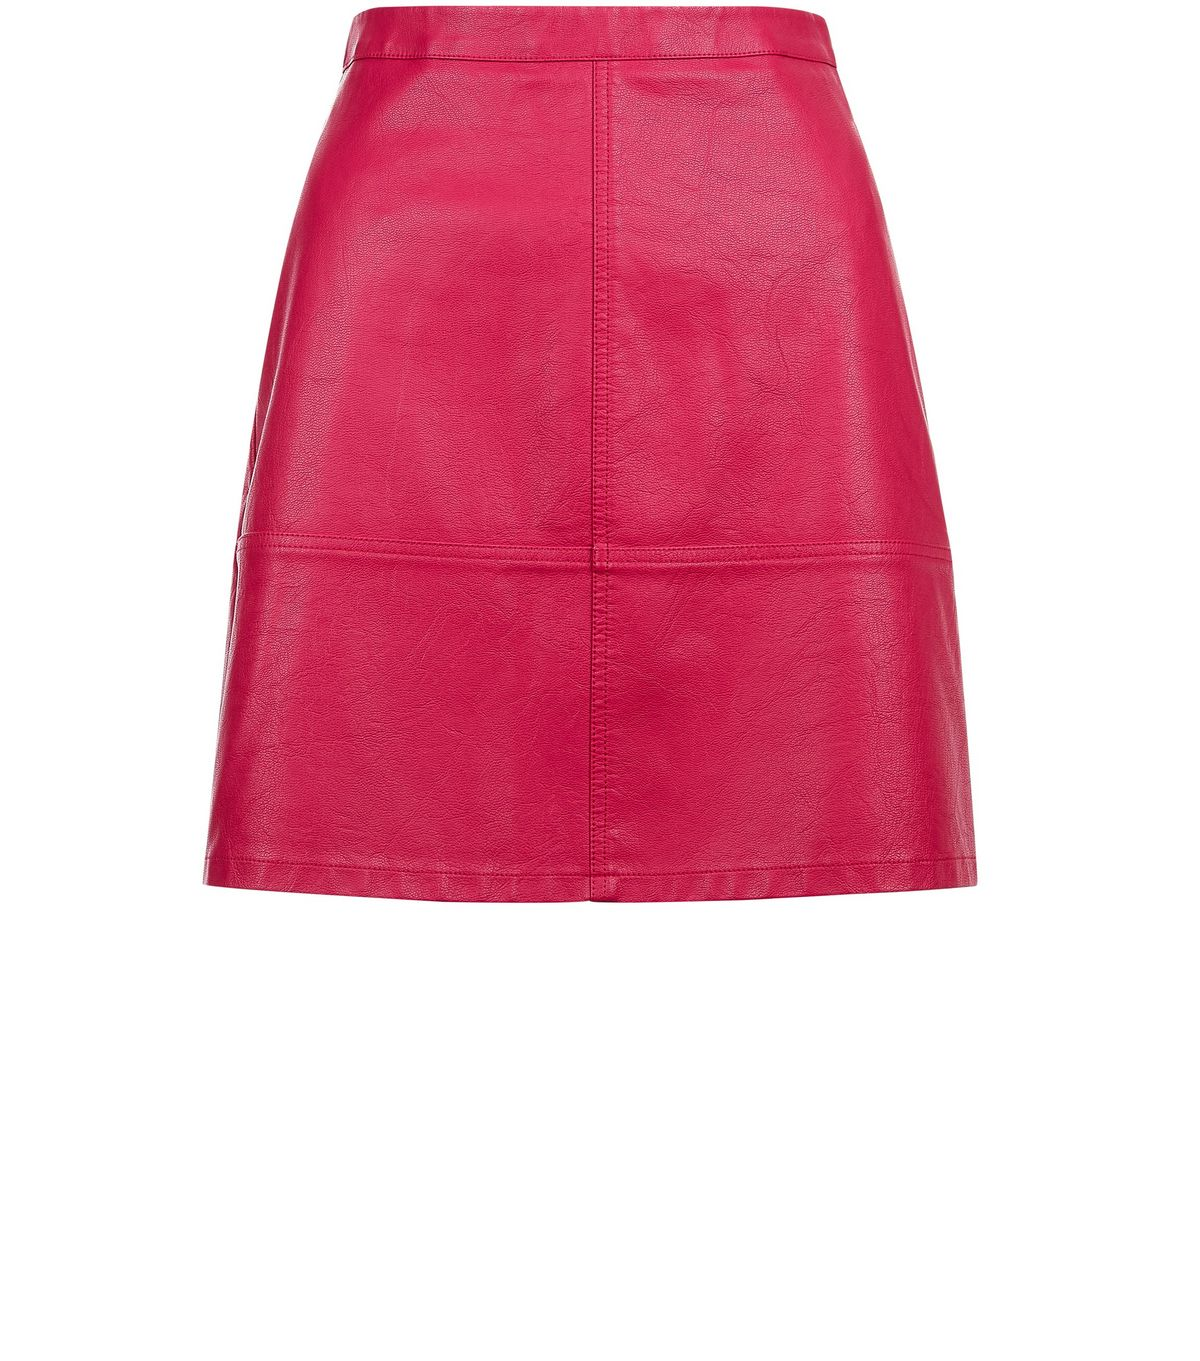 Tall Bright Pink Leather-Look Mini Skirt | New Look